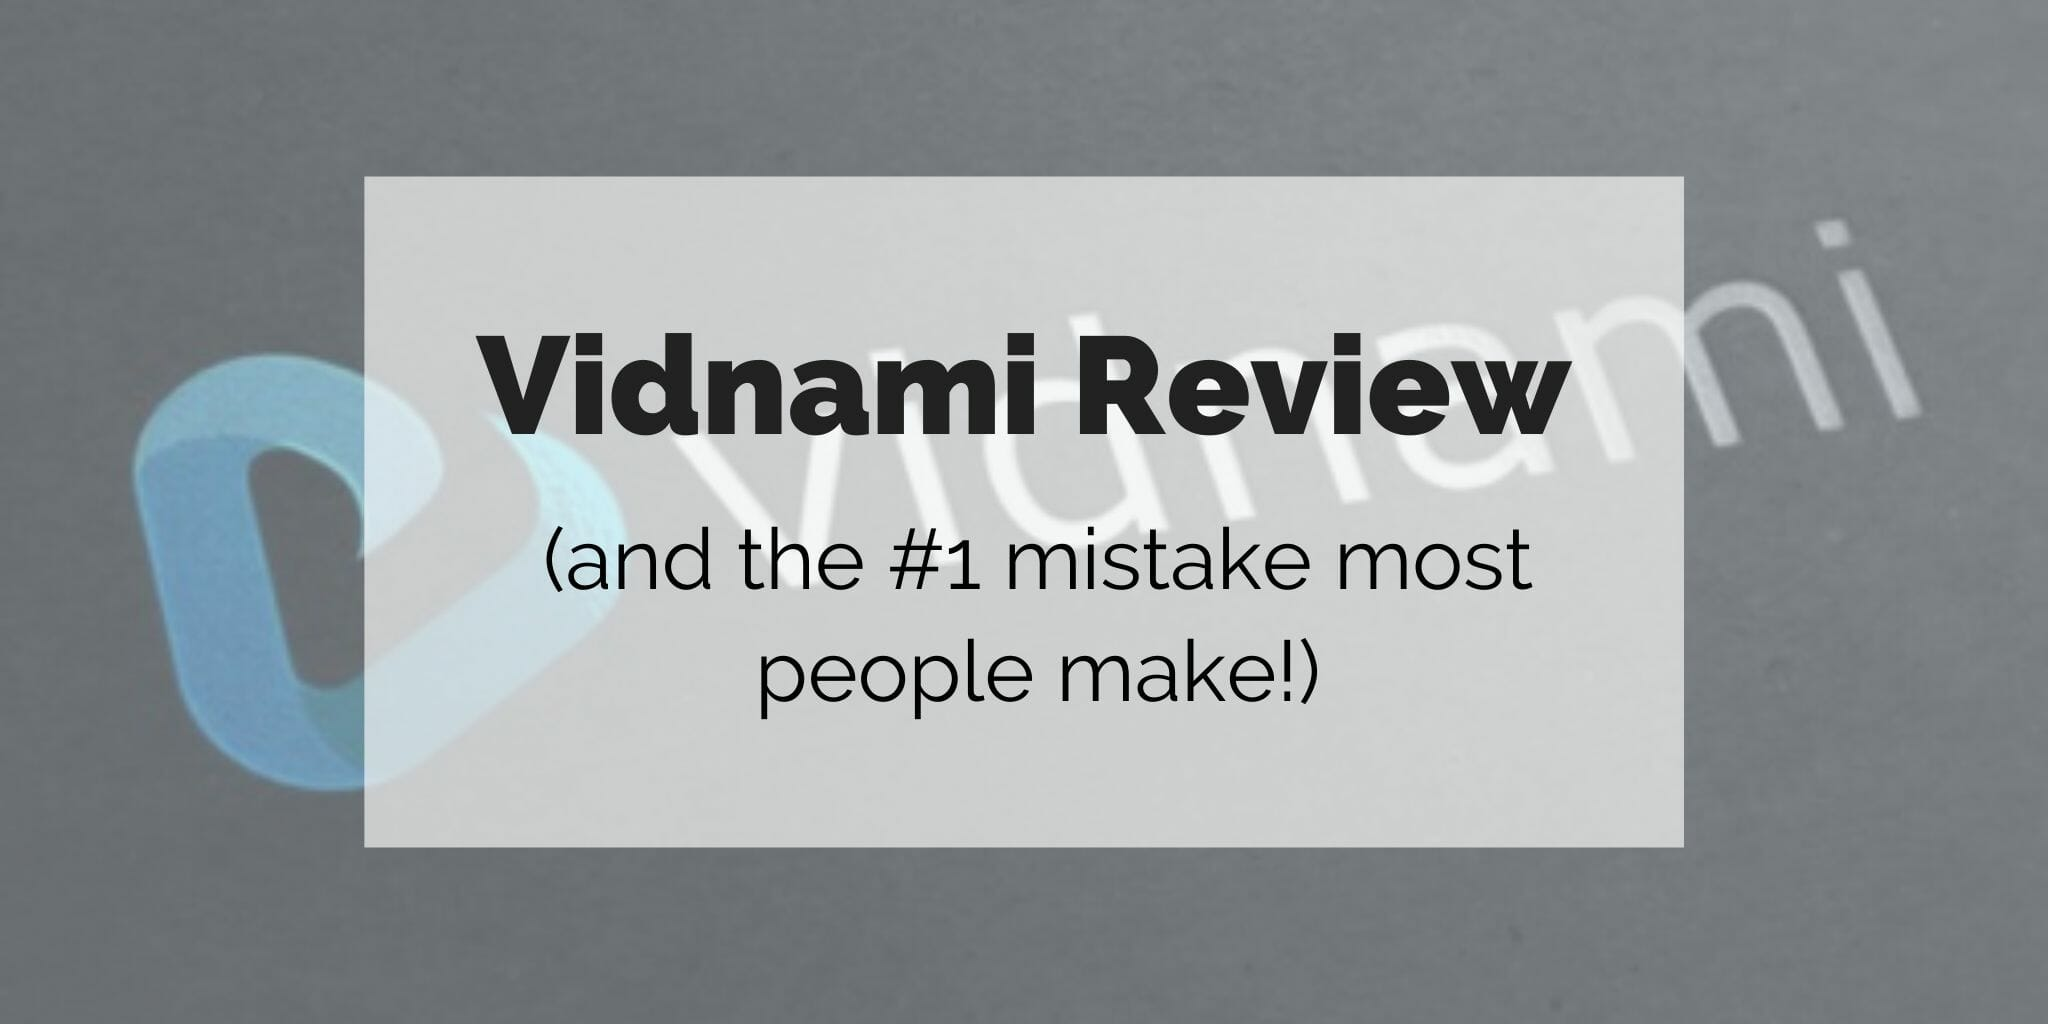 Vidnami review and the #1 mistake most people make!